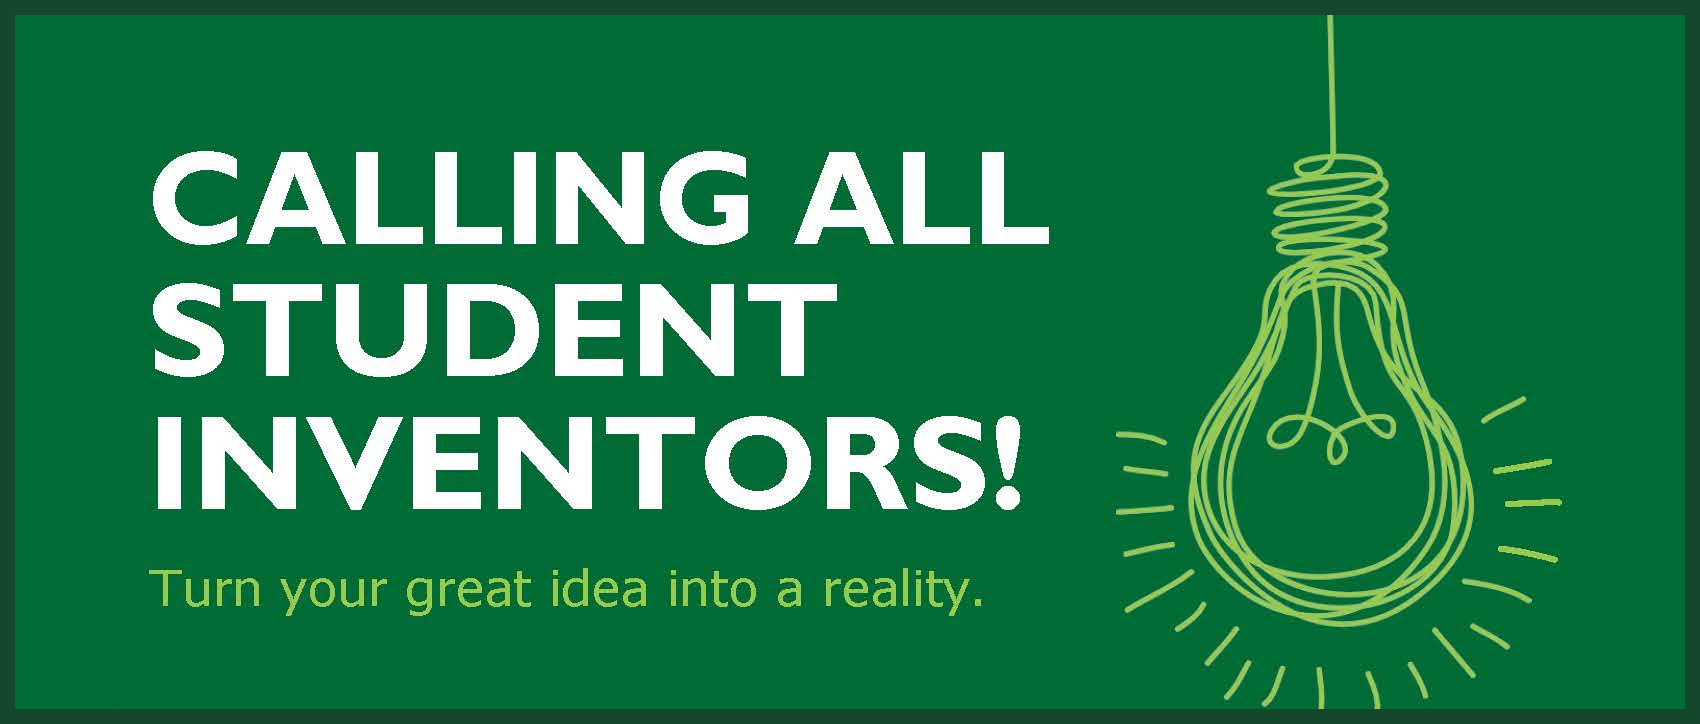 Calling all student inventors!  Turn your great idea into a reality.